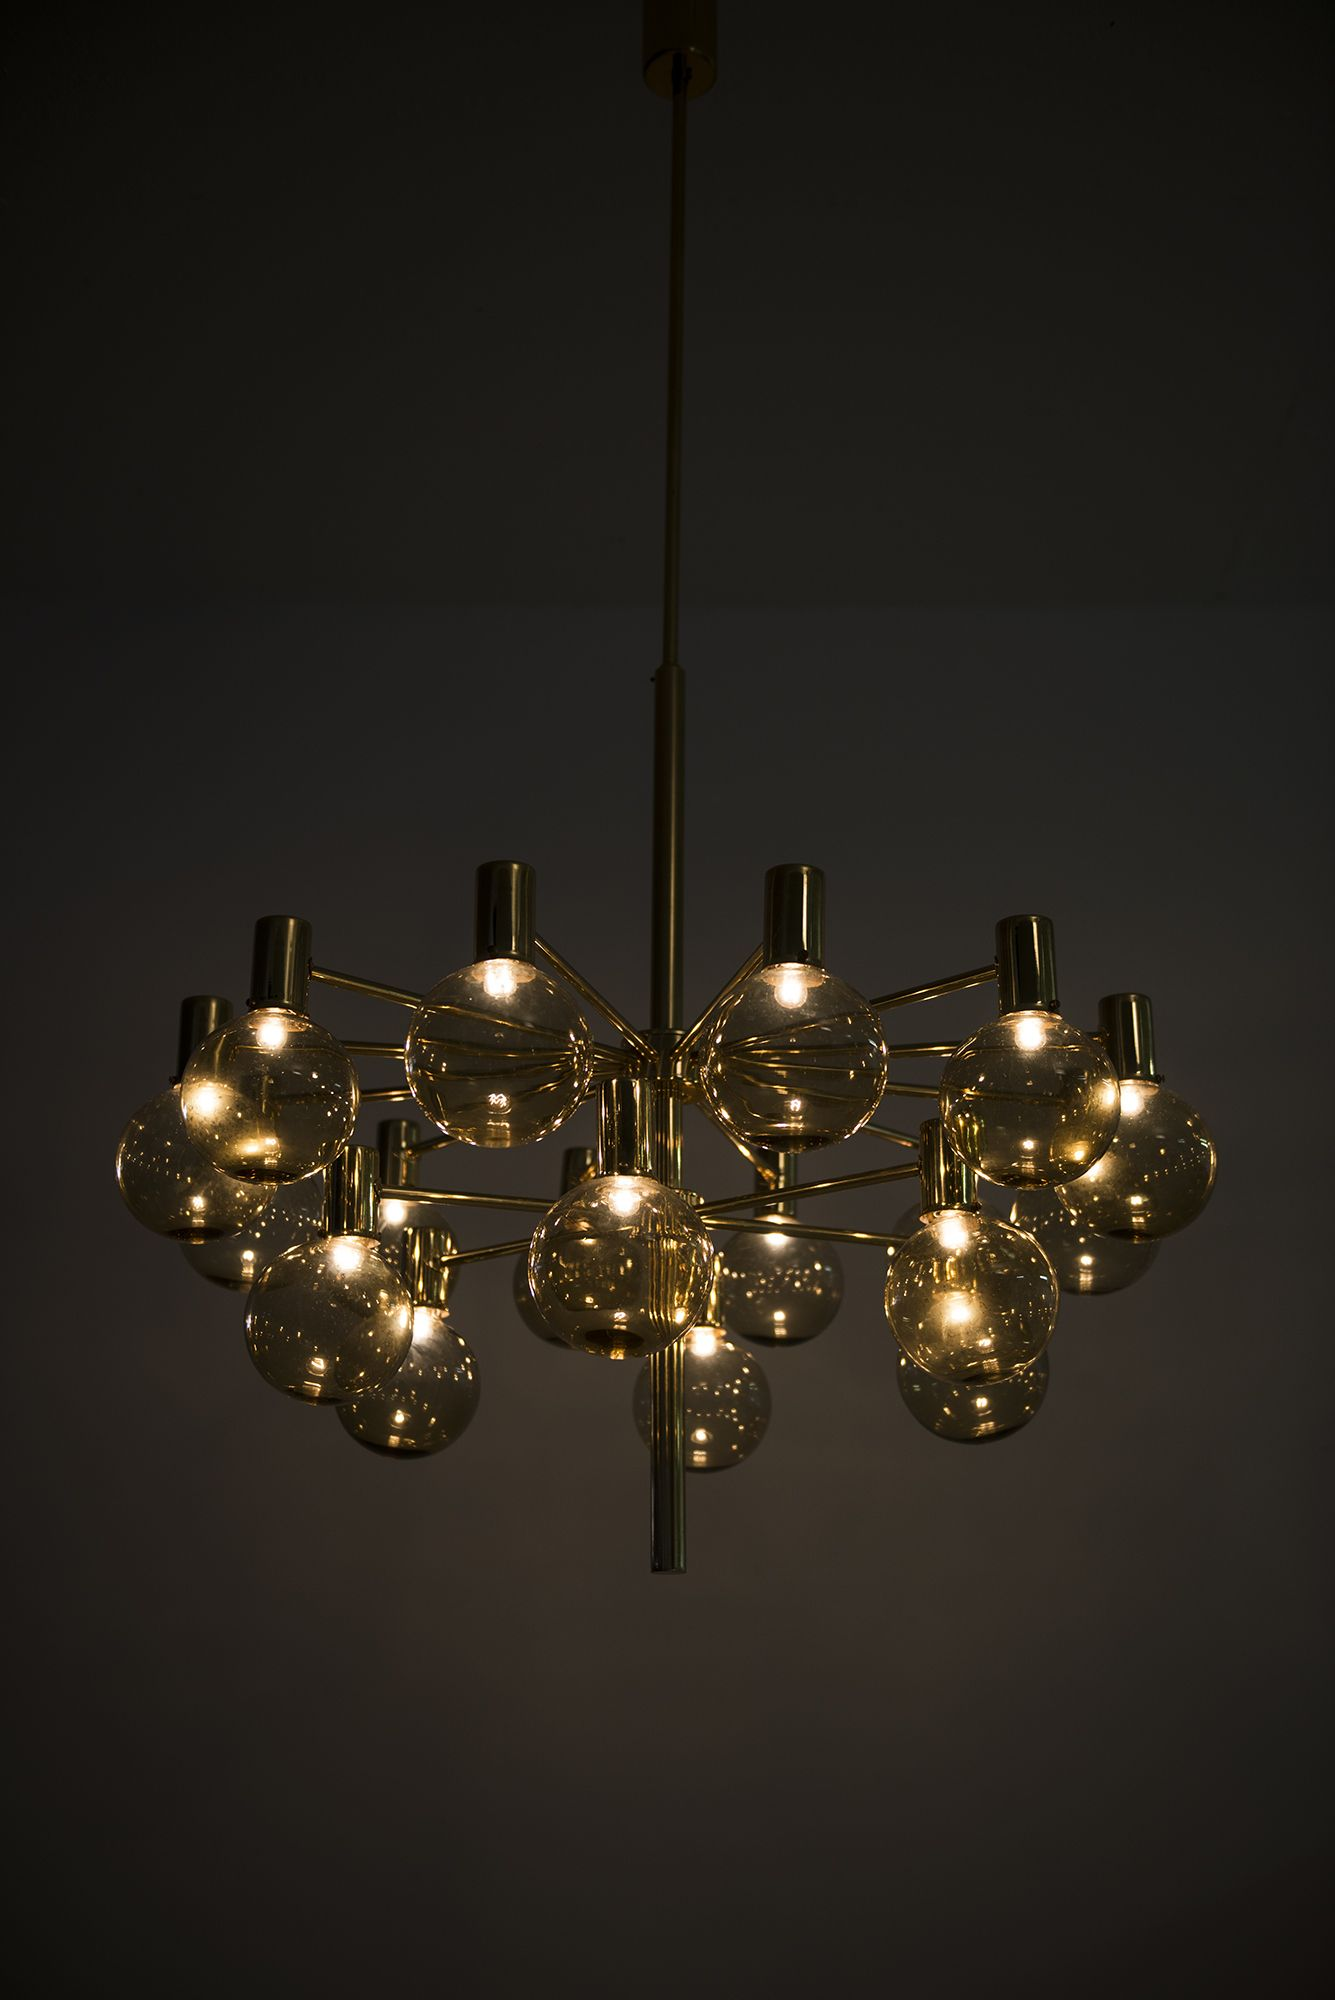 Sold With Images Ceiling Lamp Ceiling Lamp Design Lighting Design Interior